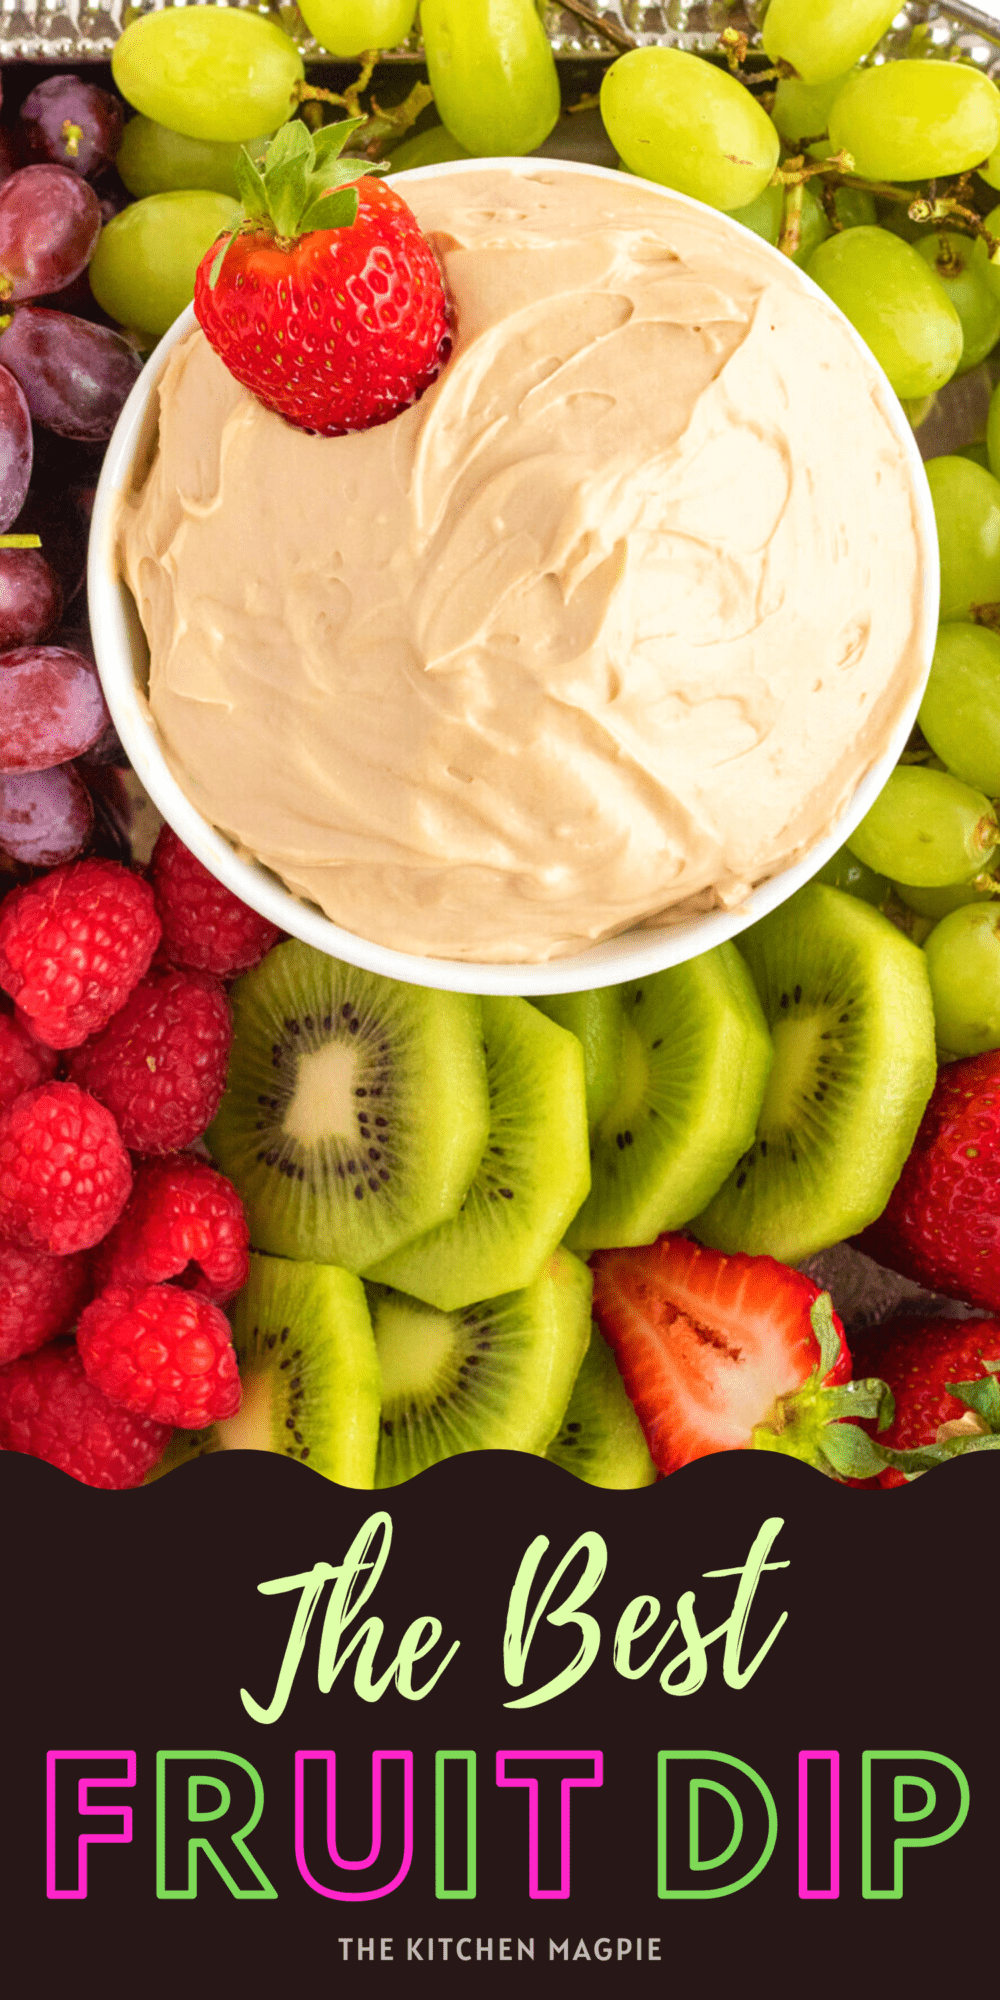 This delicious and easy classic fruit dip is brown sugar and cream cheese based, and is perfect served with a fruit tray or just as a side for fruit snacking!